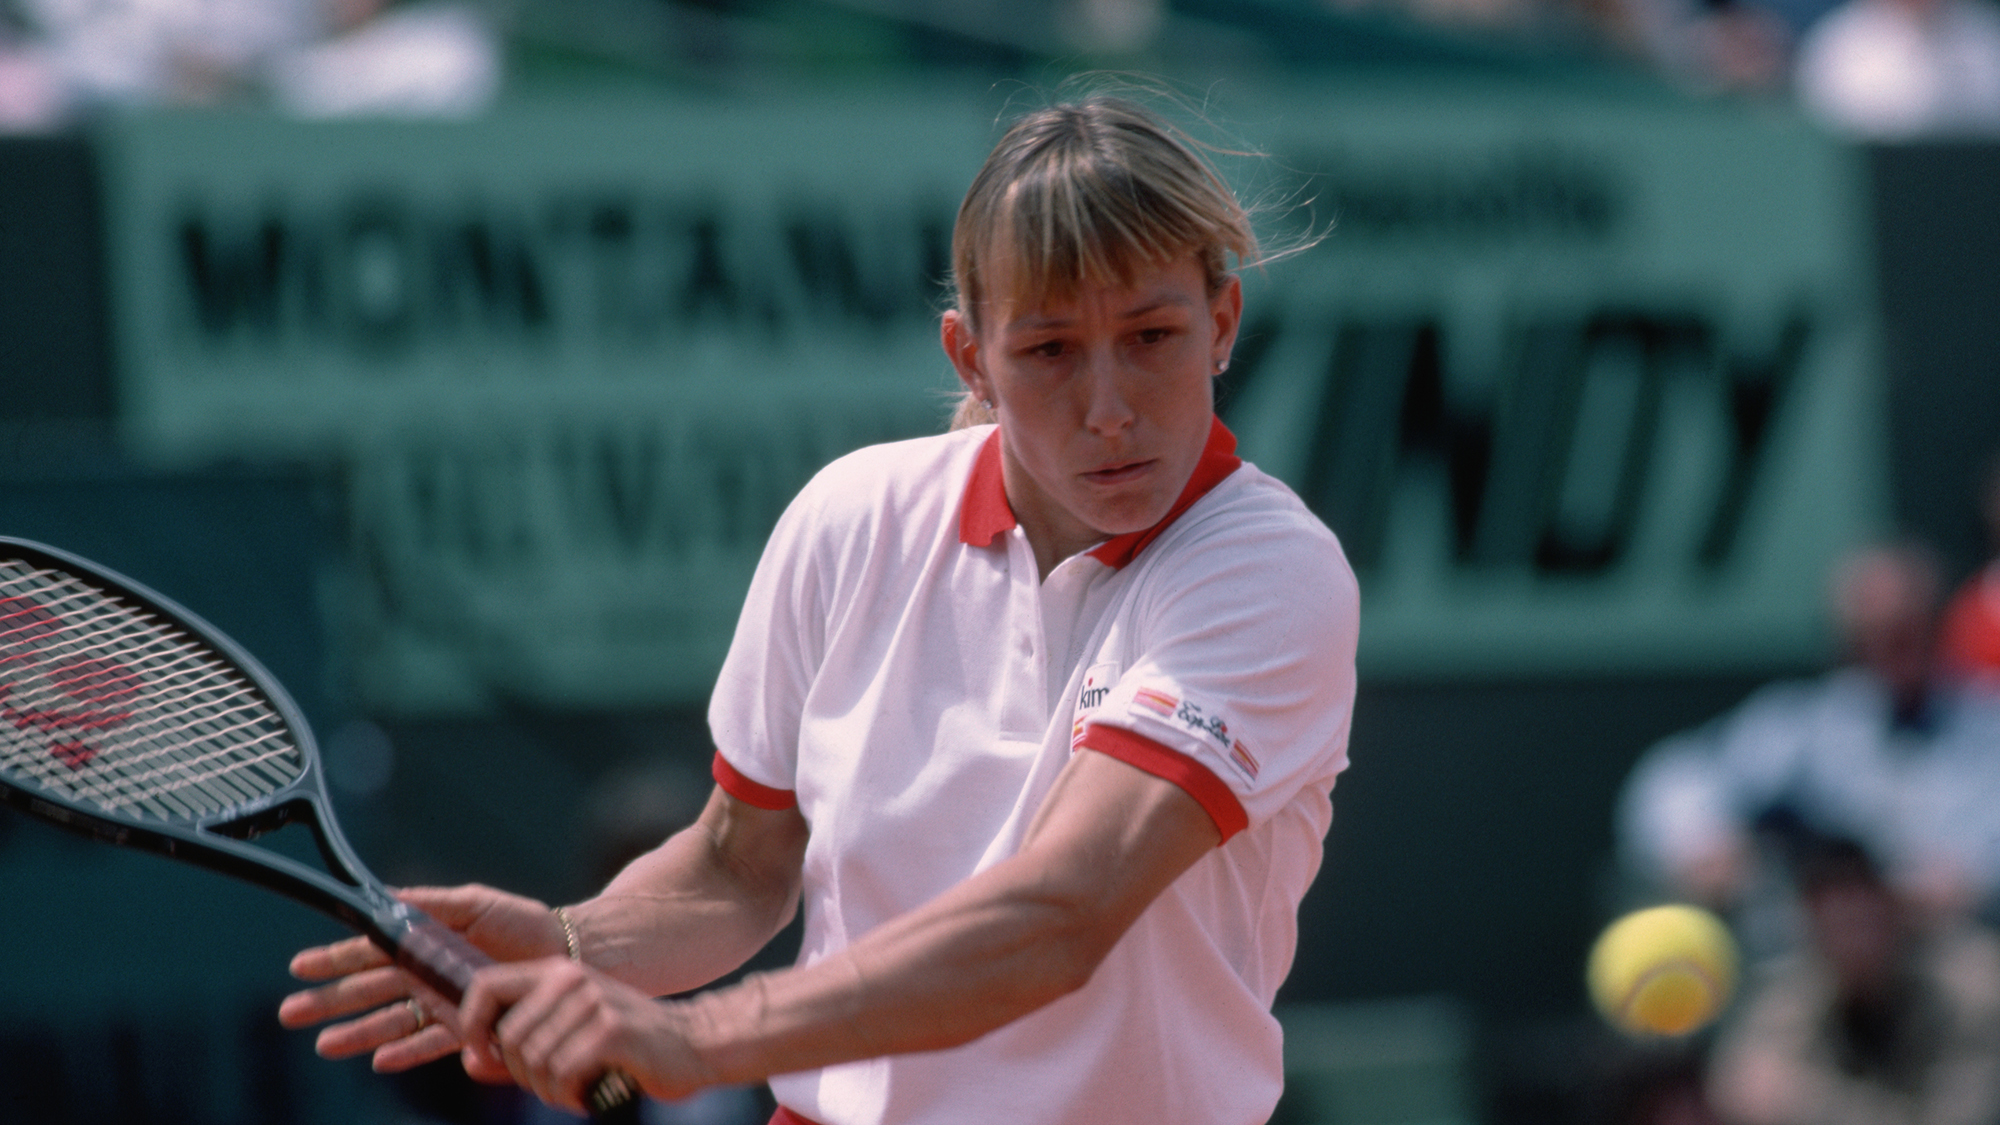 Martina Navratilova 1983 us open